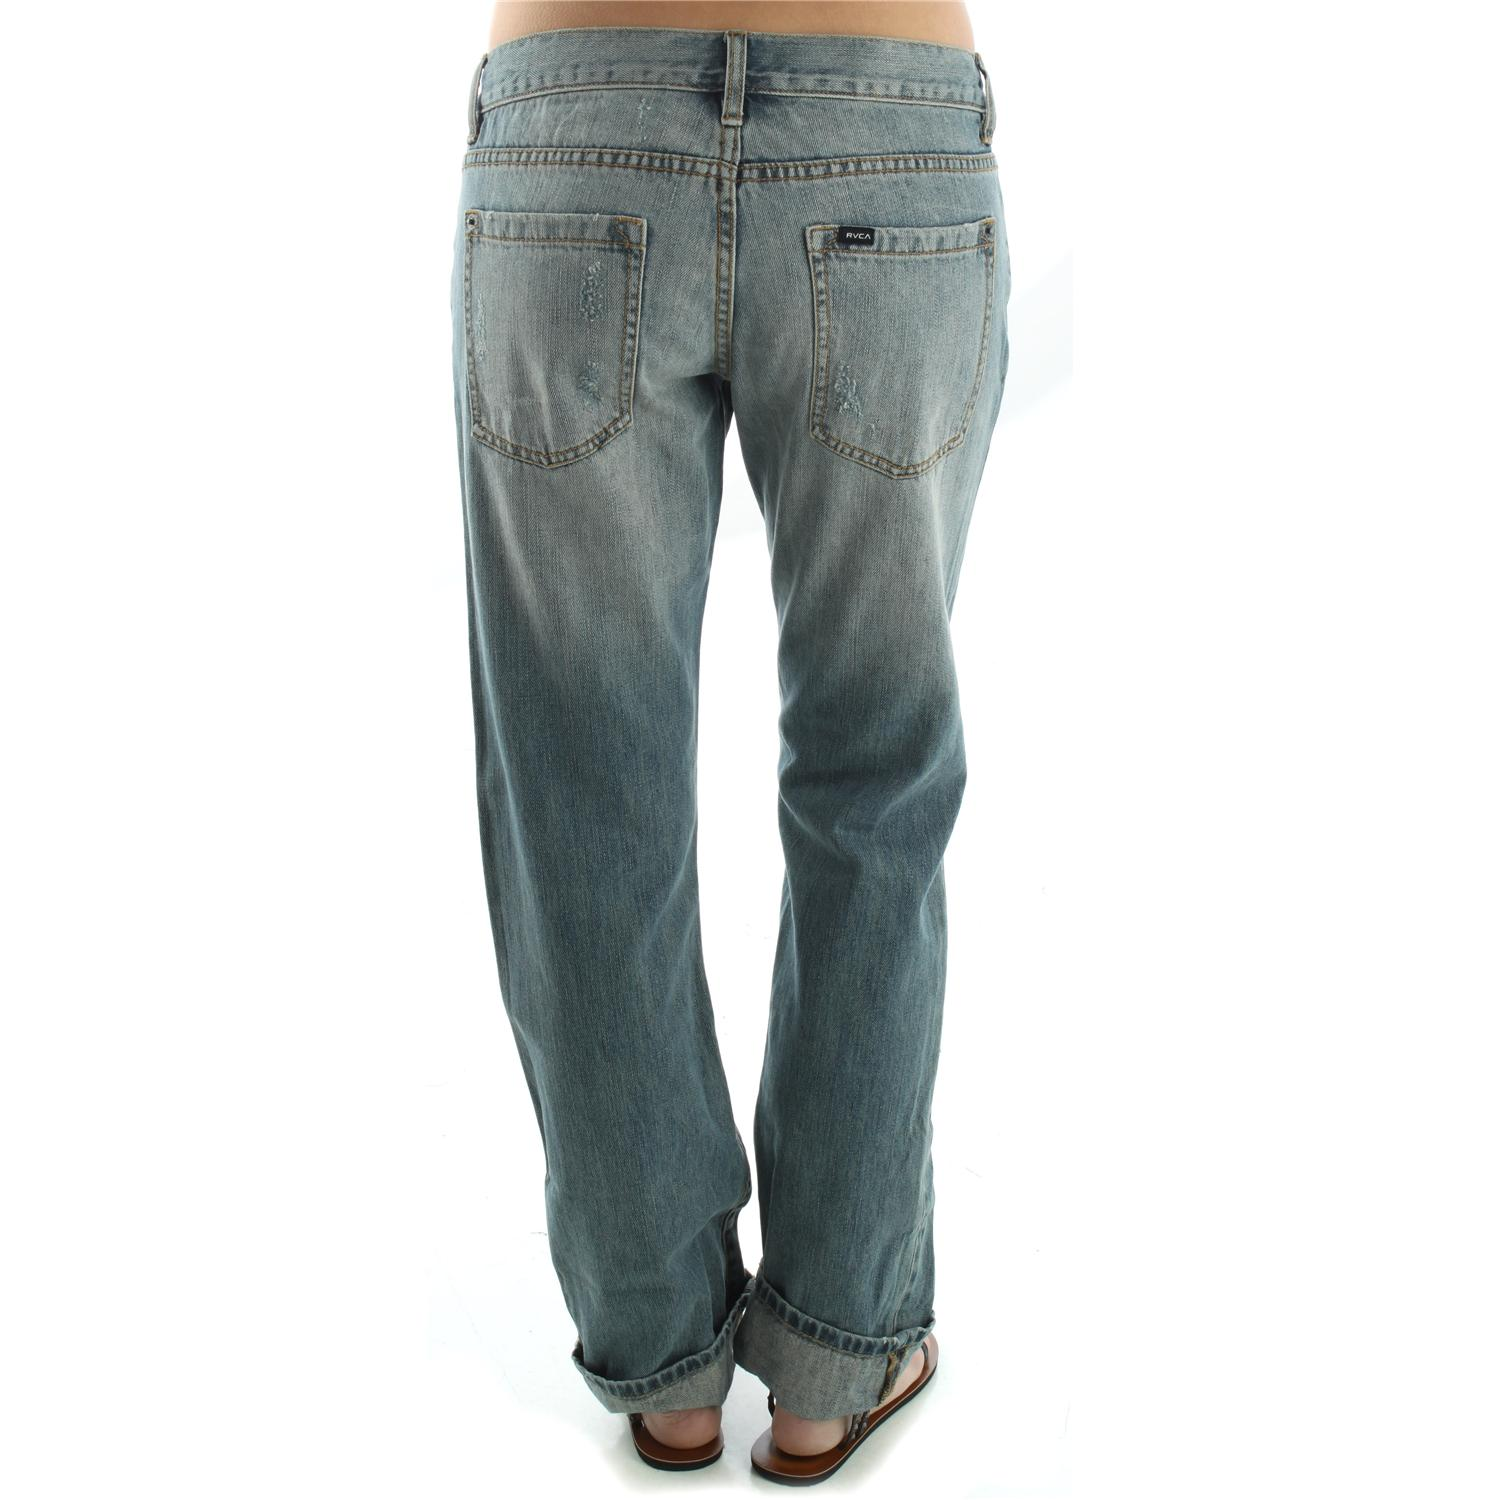 boyfriend jeans for women - photo #1